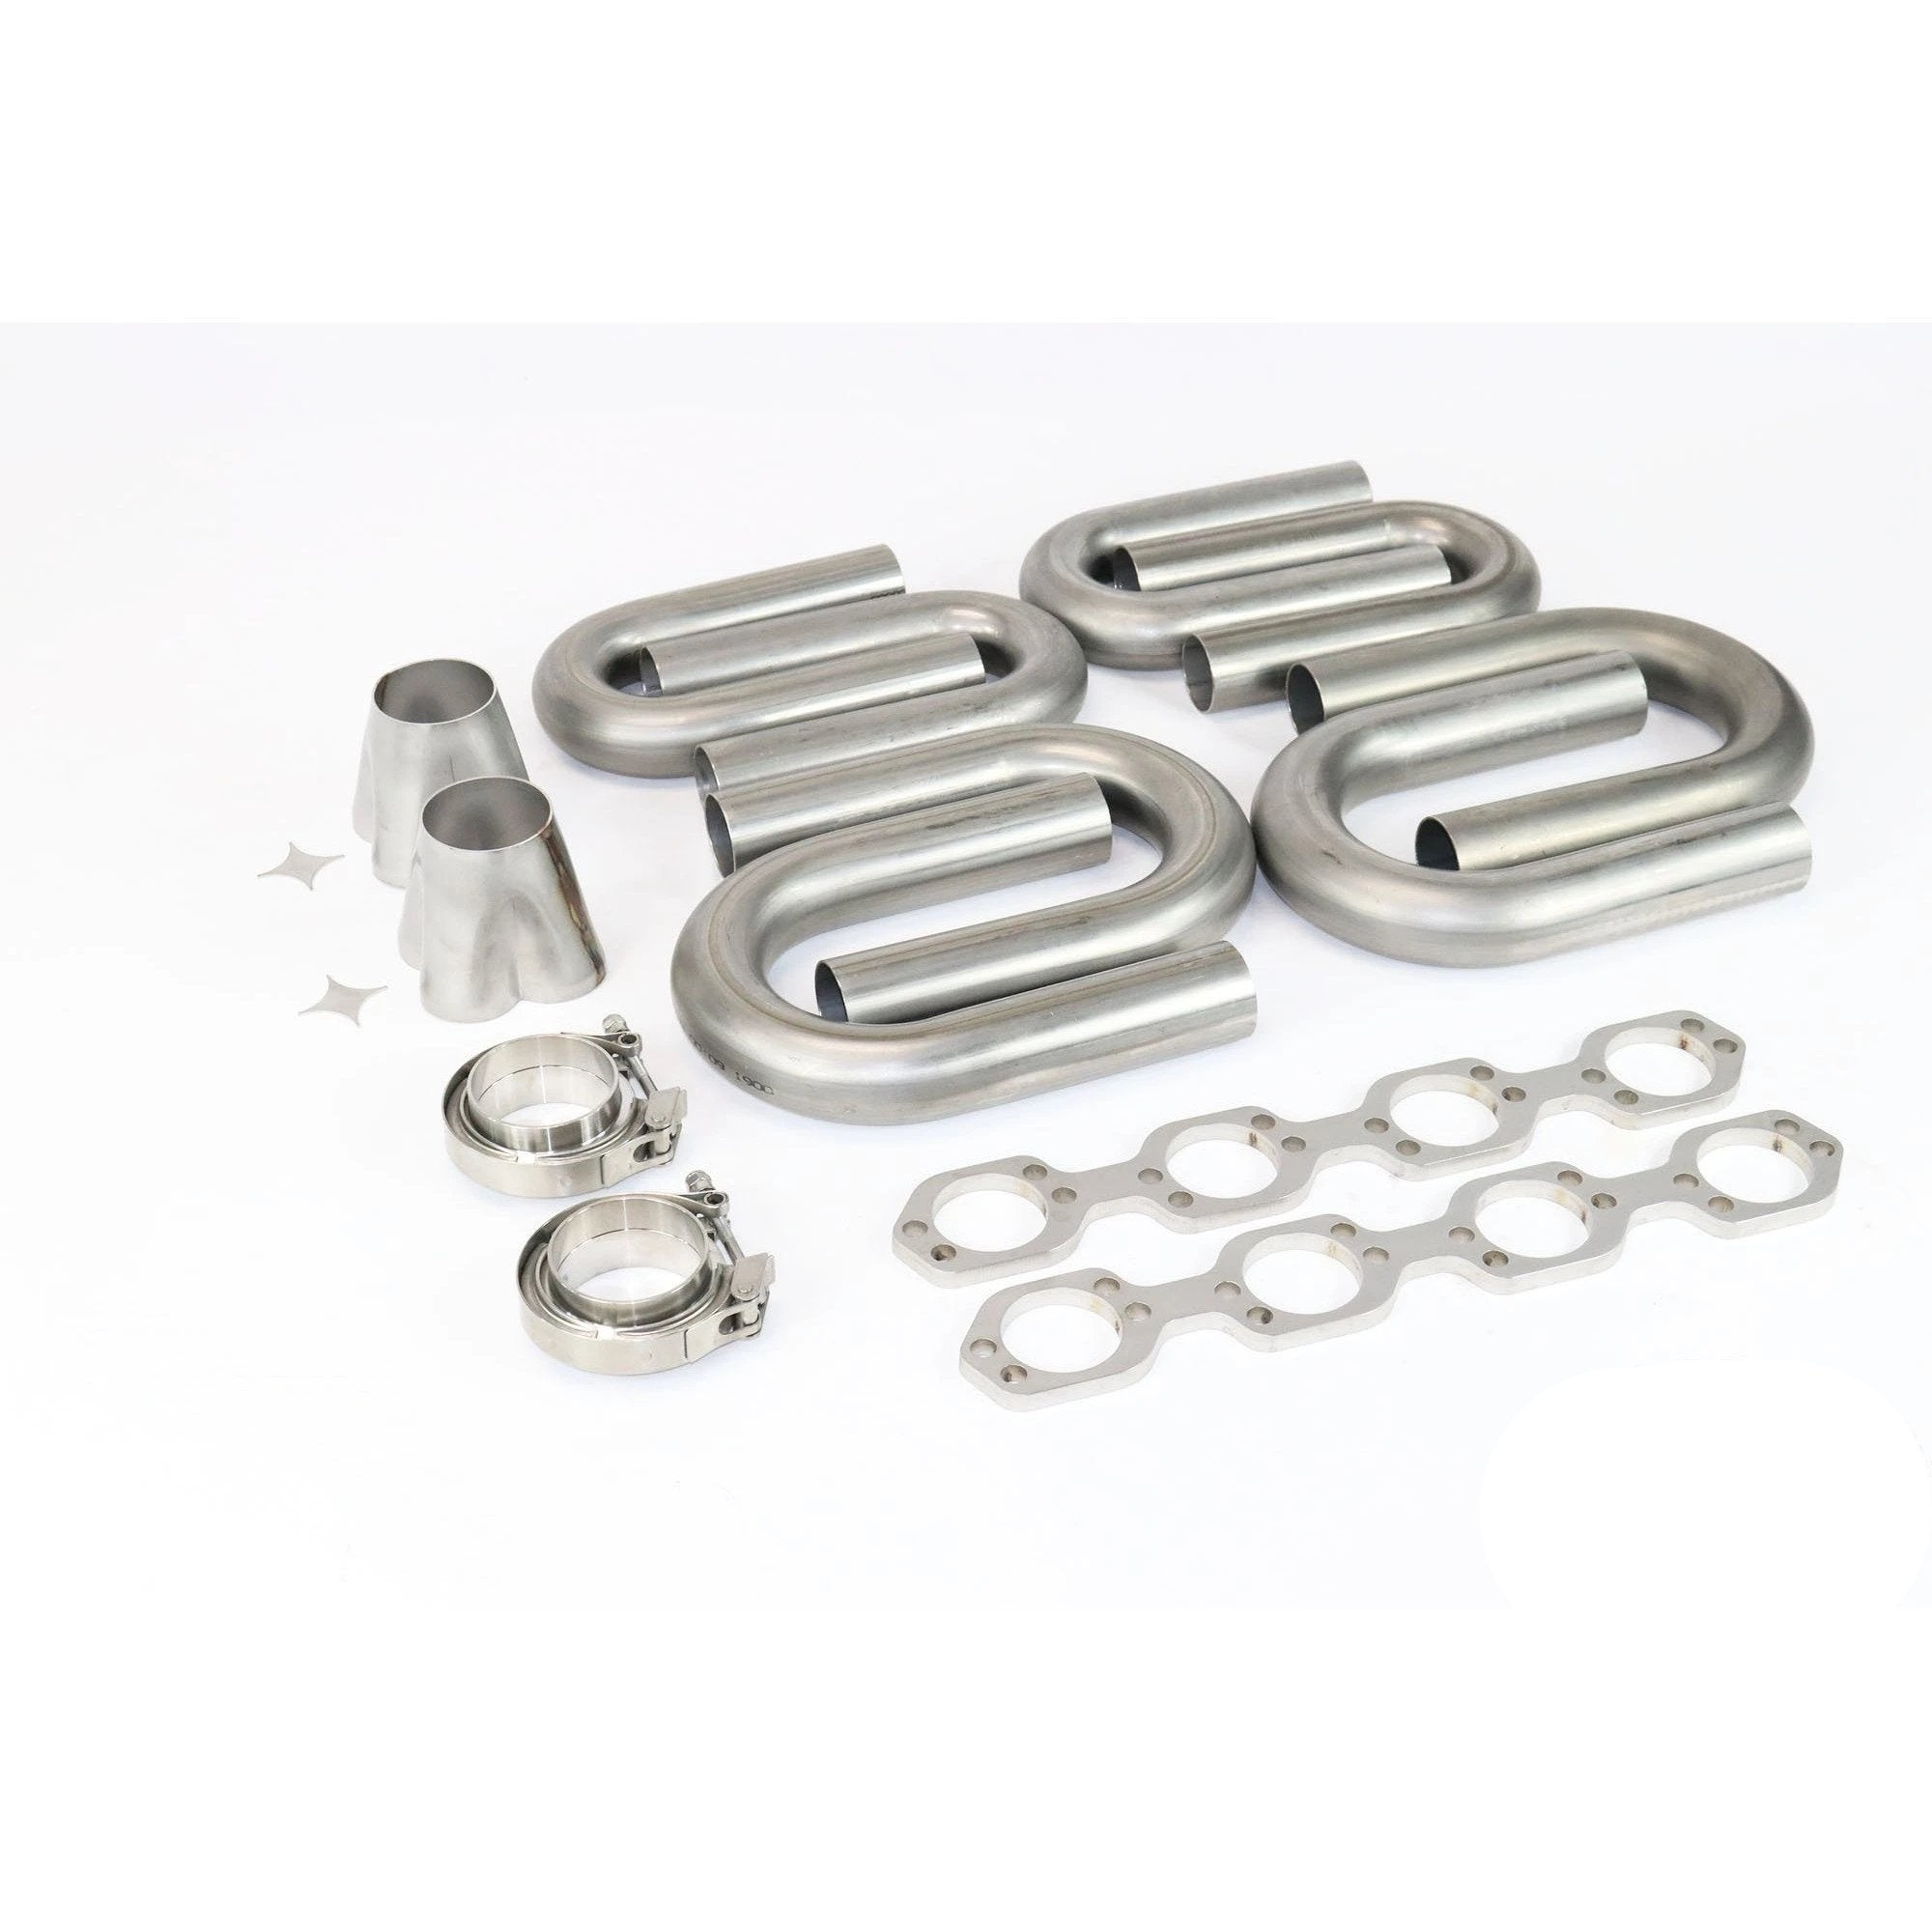 Ford Hi Port SBF 304 Stainless Turbo Header Build Kit 1 7/8-Motion Raceworks-Motion Raceworks